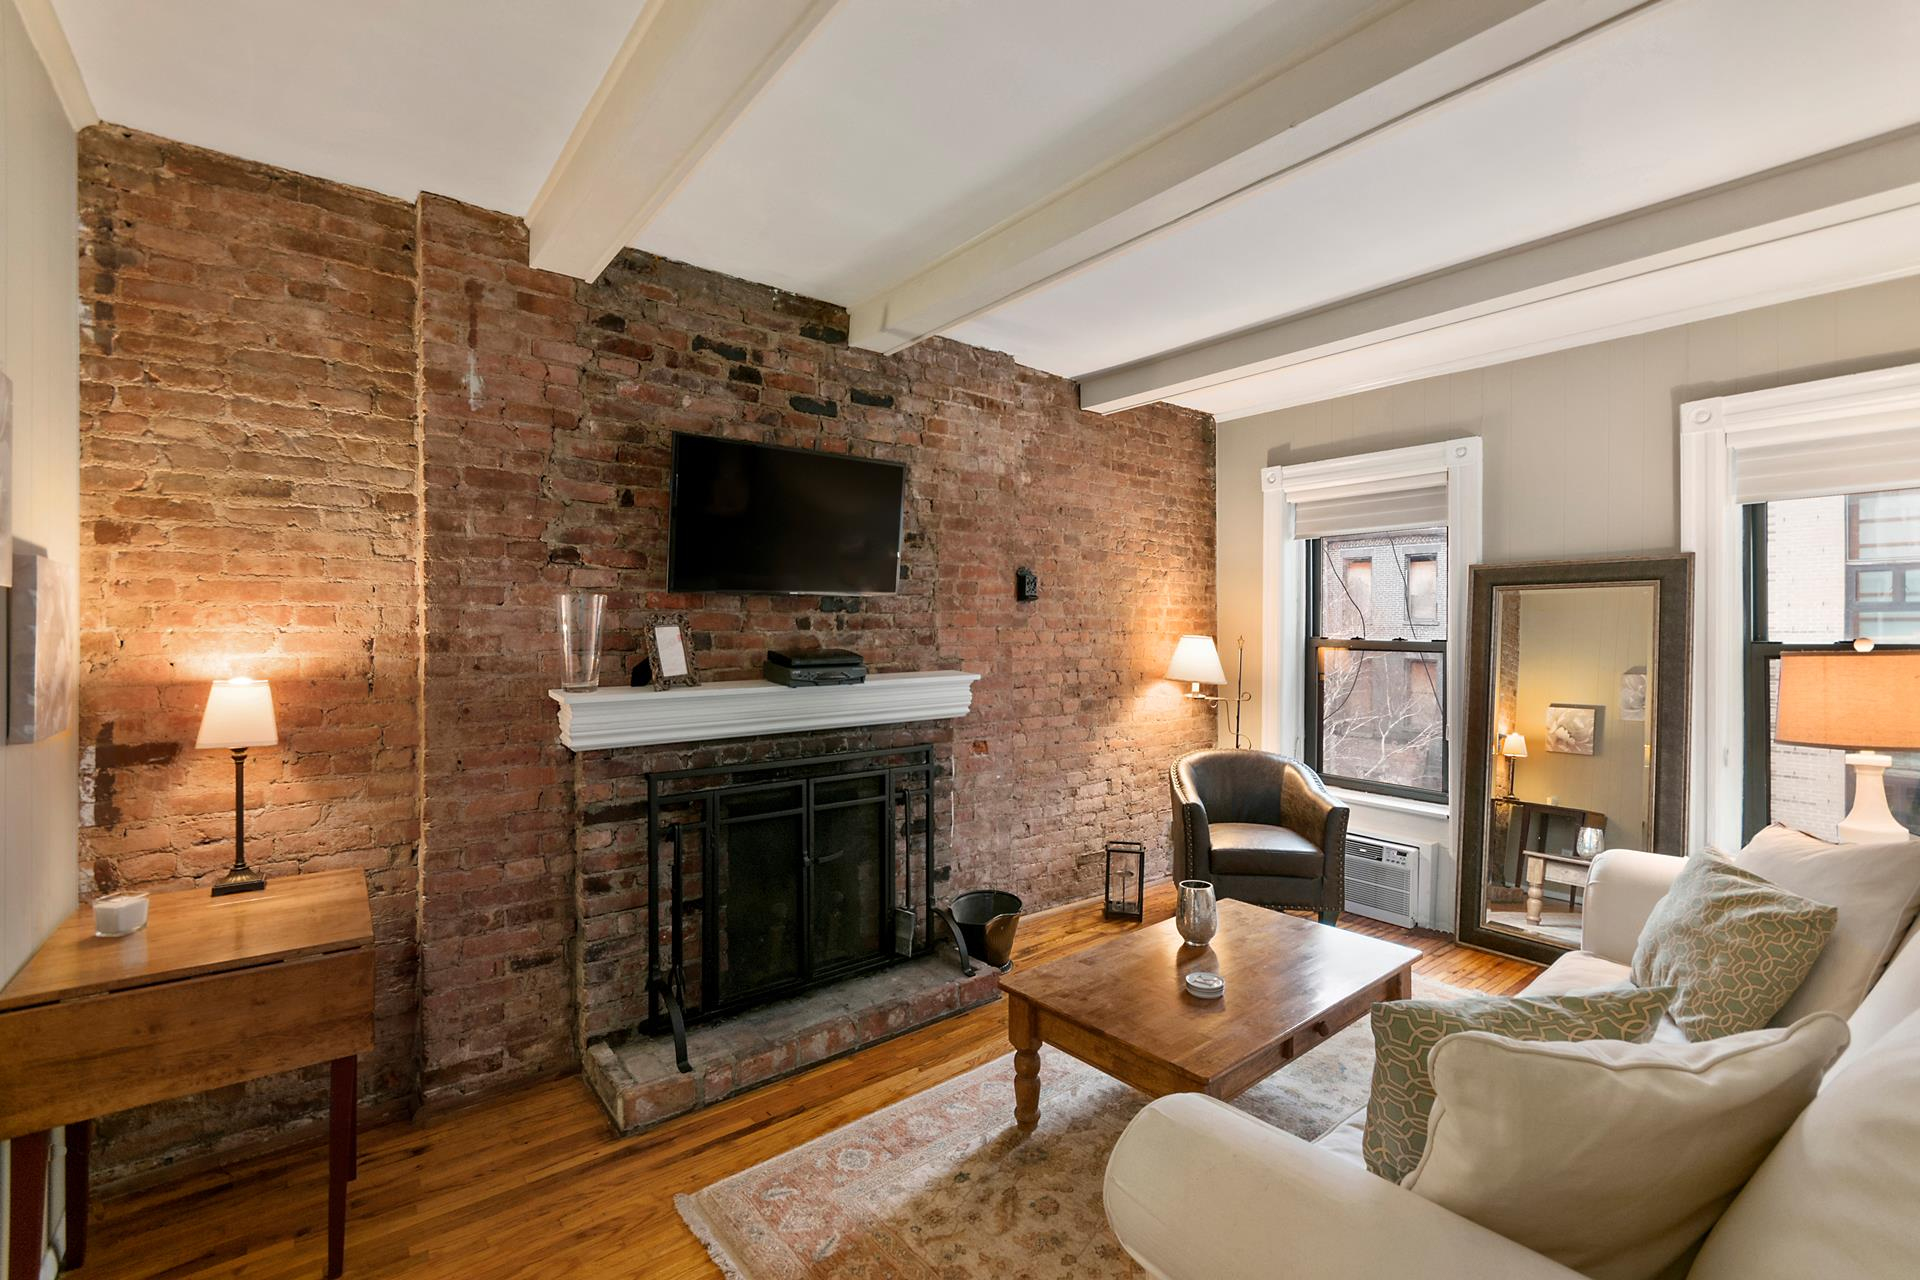 134 West 71st St, 10 - Upper West Side, New York